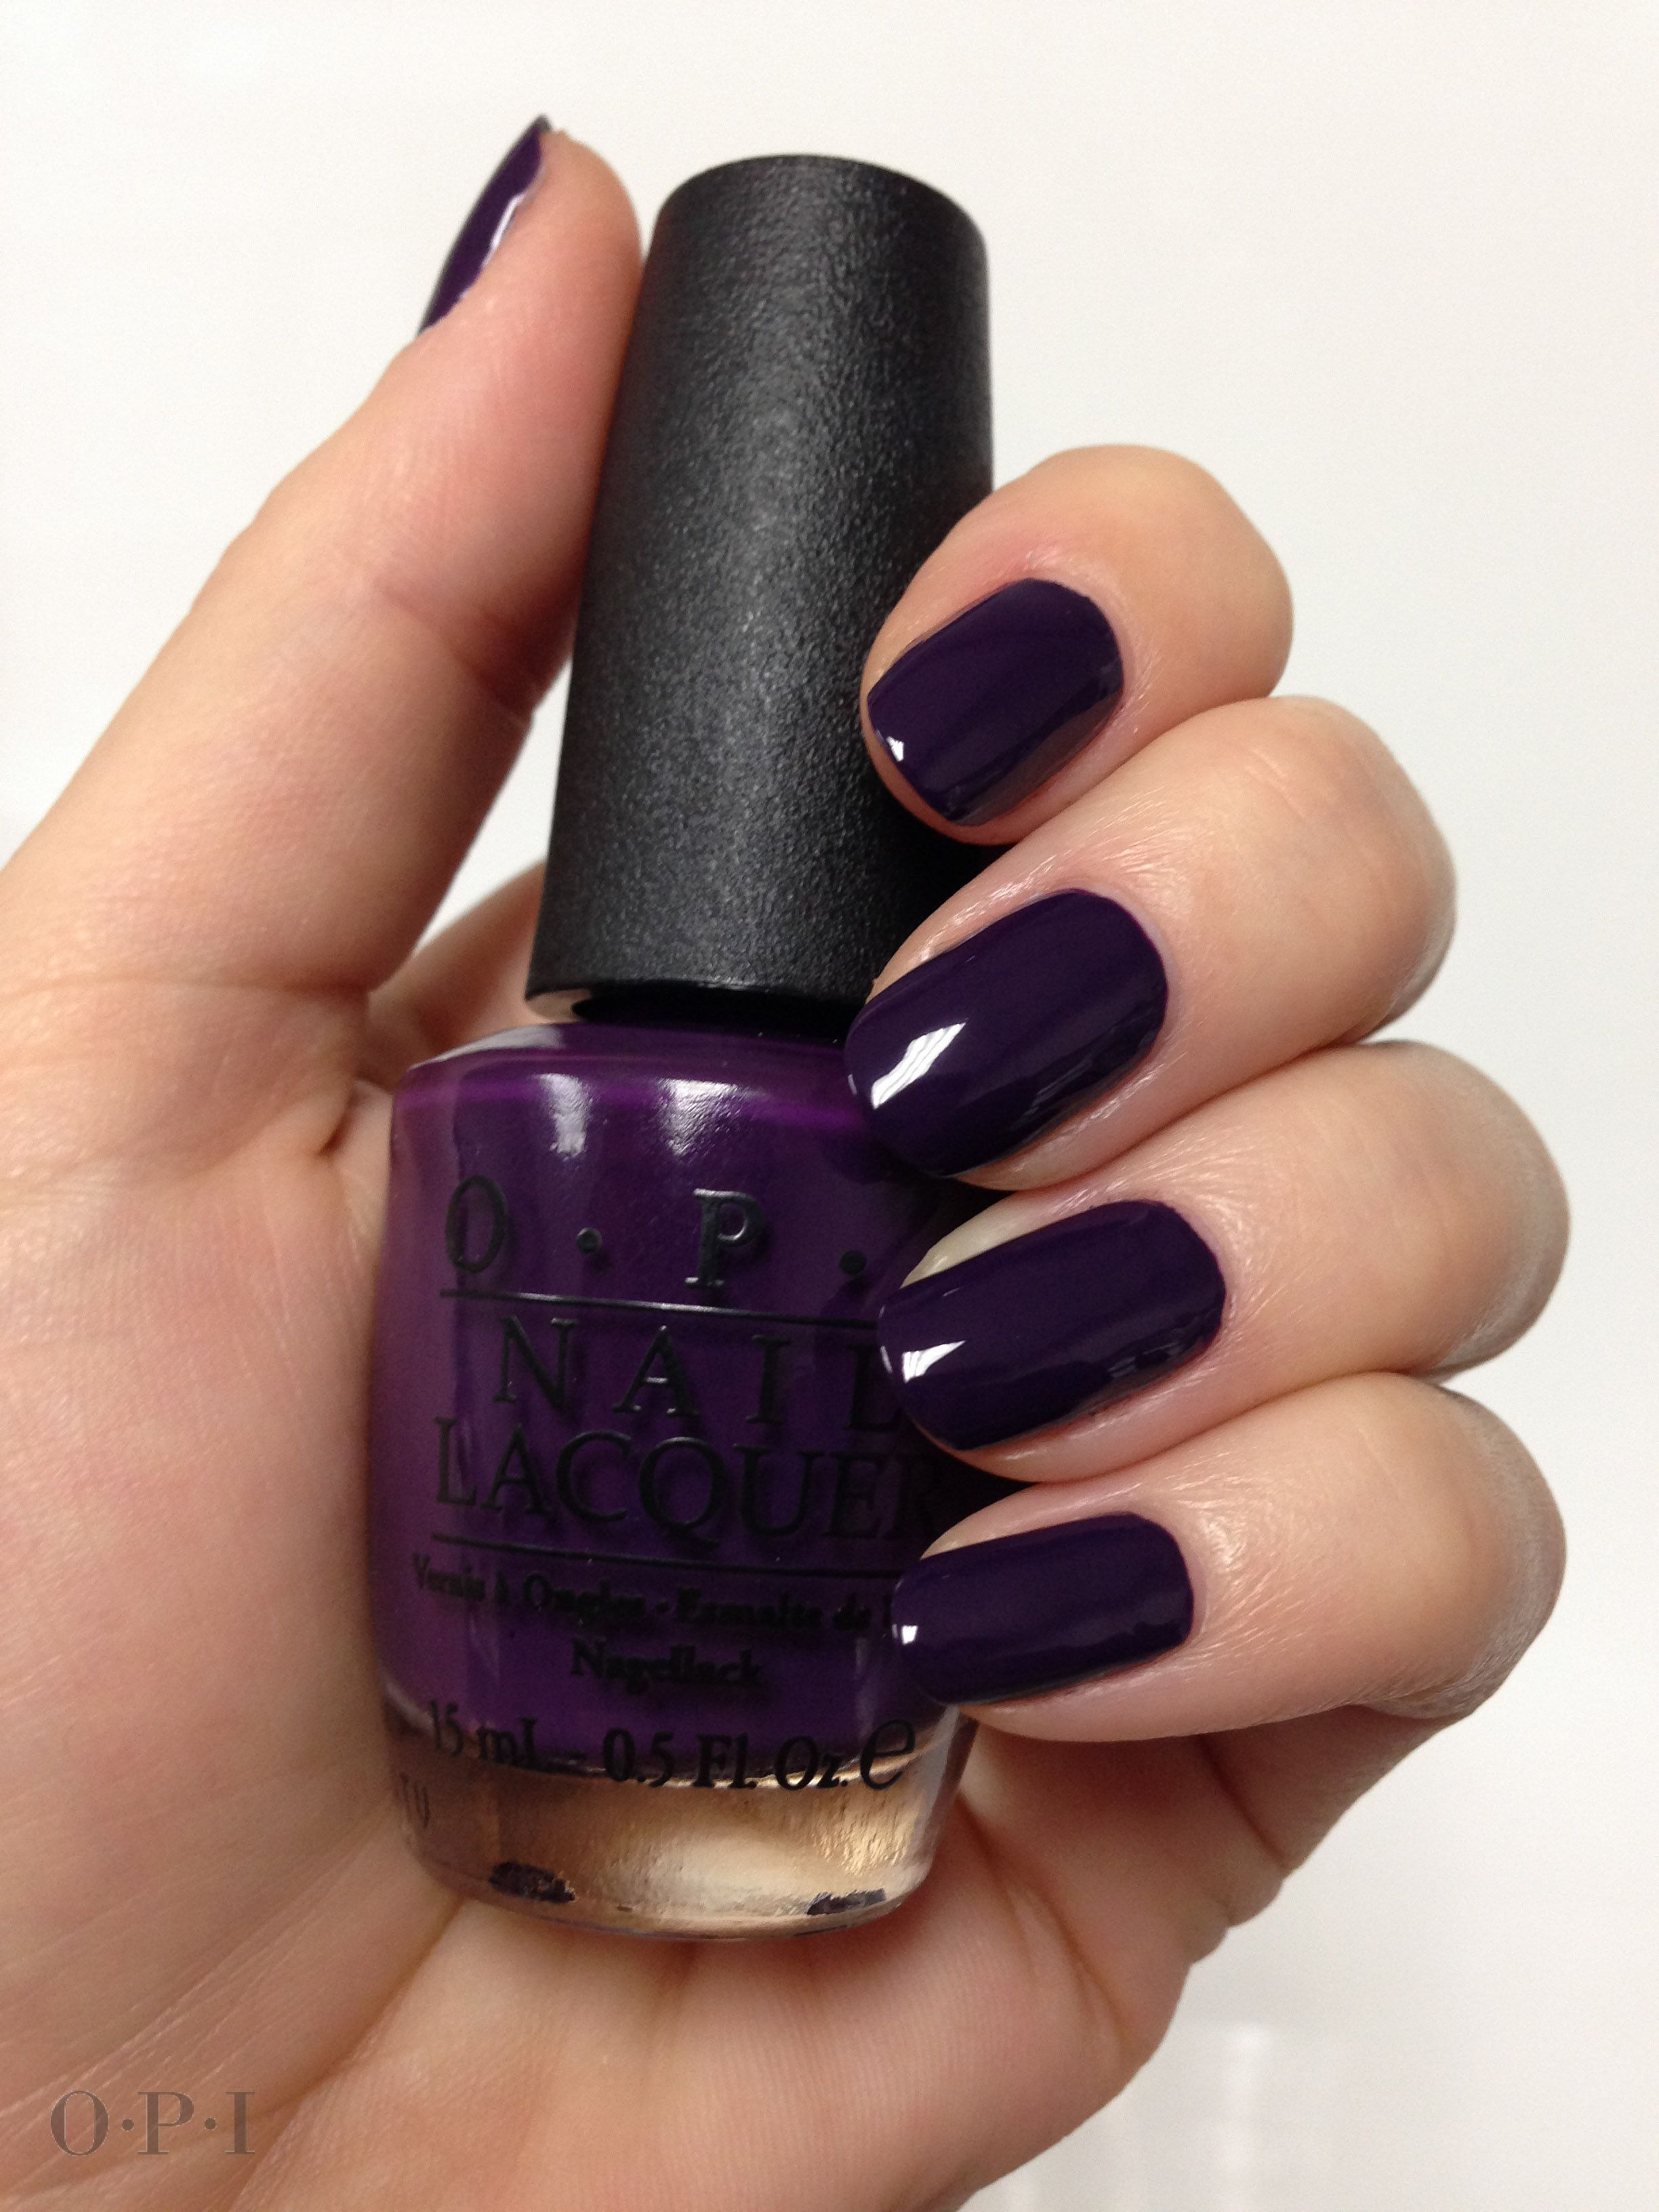 Vant To Bite My Neck? #OPIEuroCentrale | Nail Polish Love ...